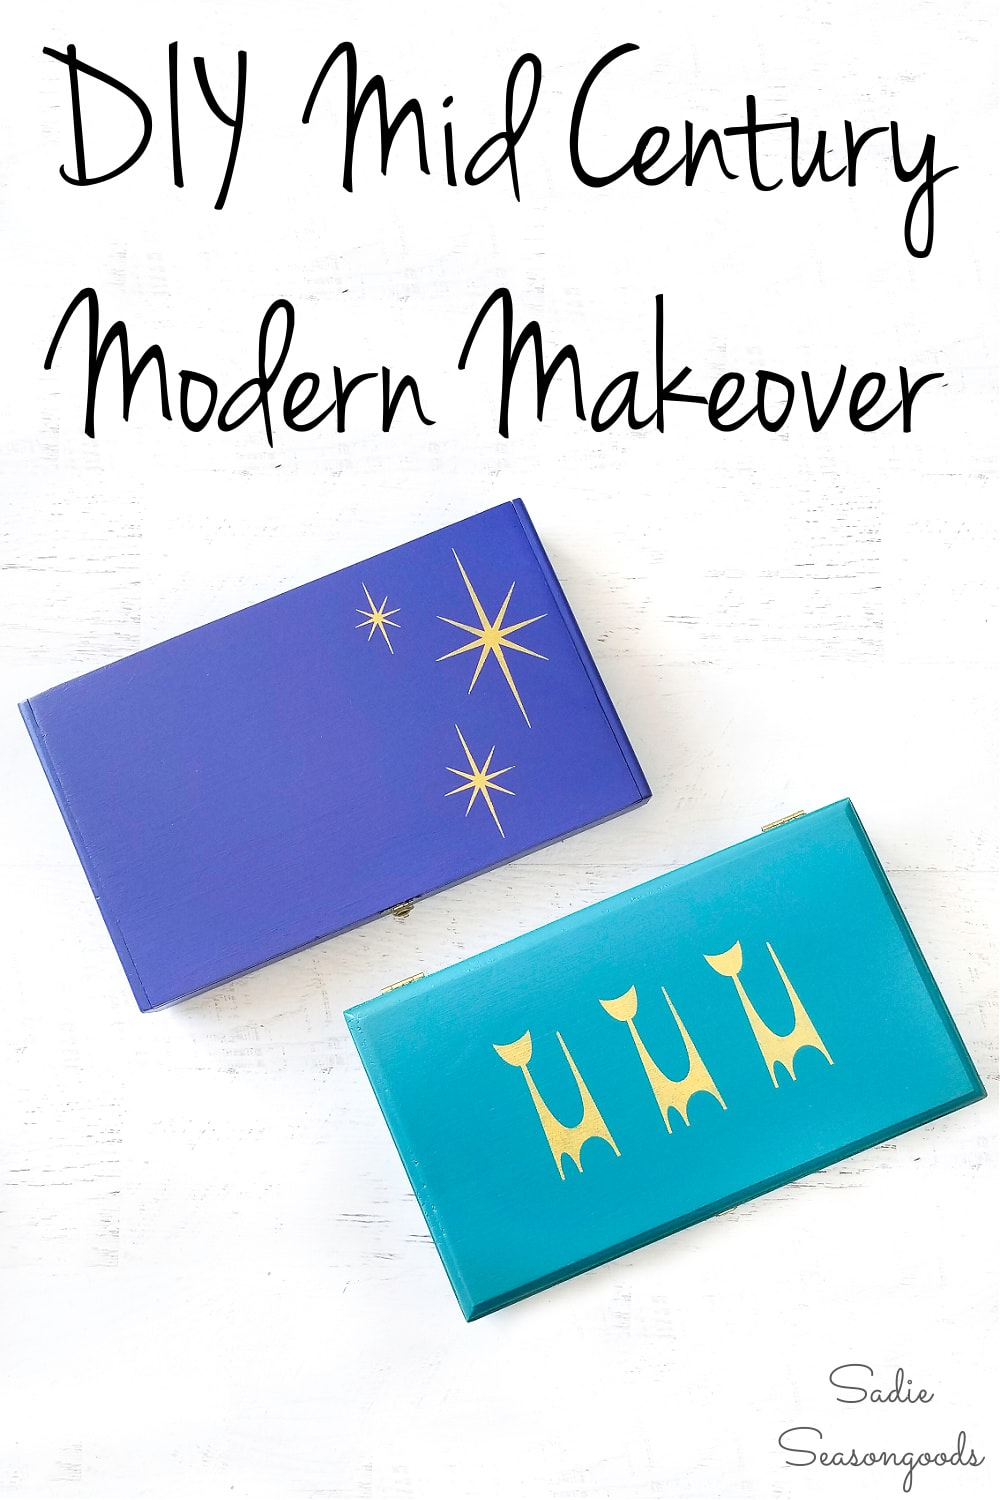 stencils for a mid century makeover